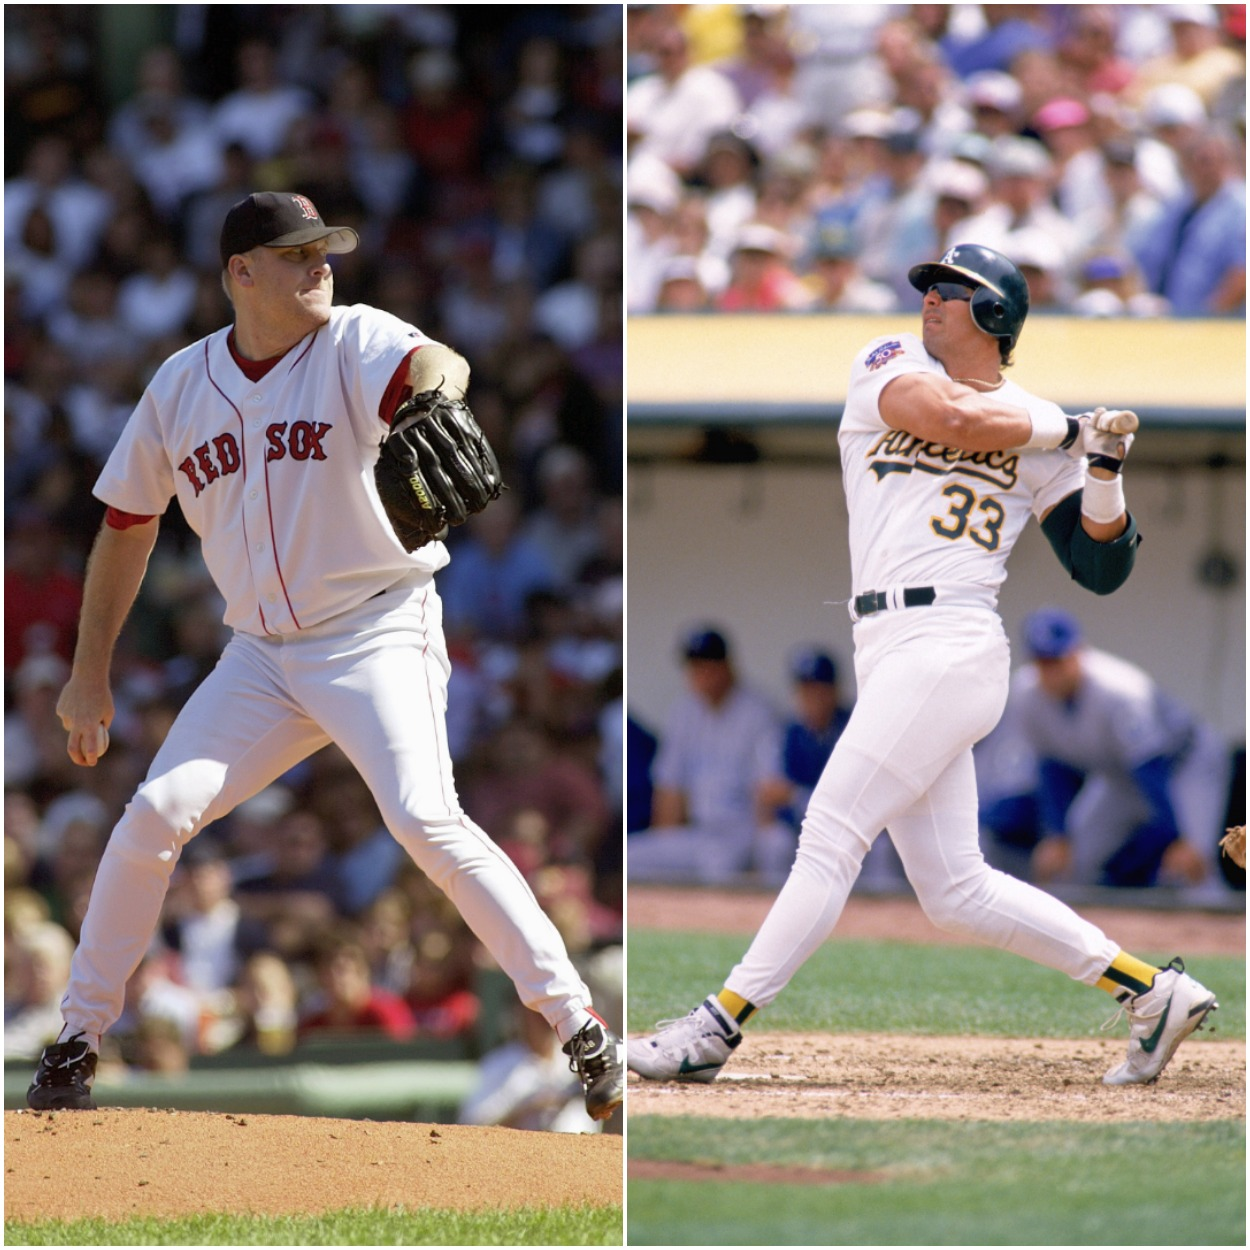 Curt Schilling and Jose Canseco